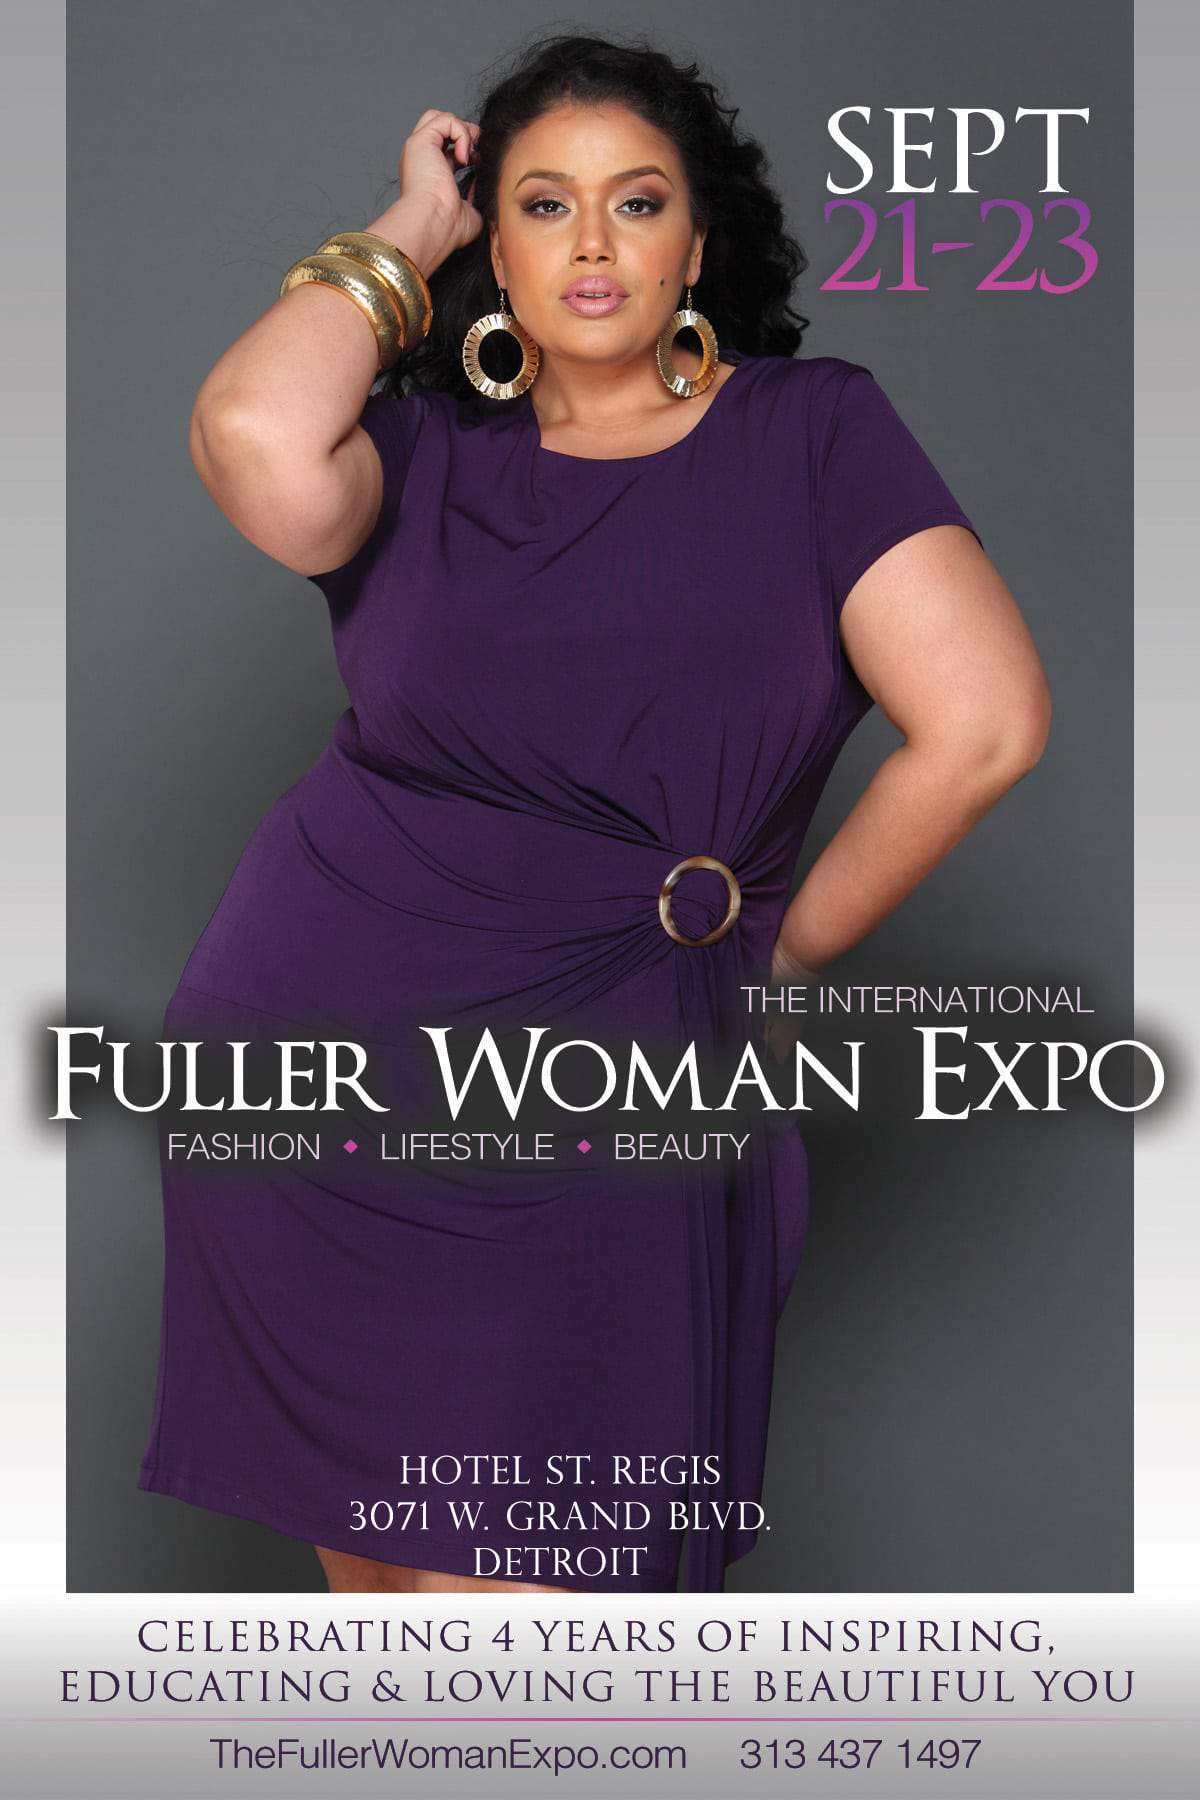 The 4th Annual Fuller Woman Expo in Detroit